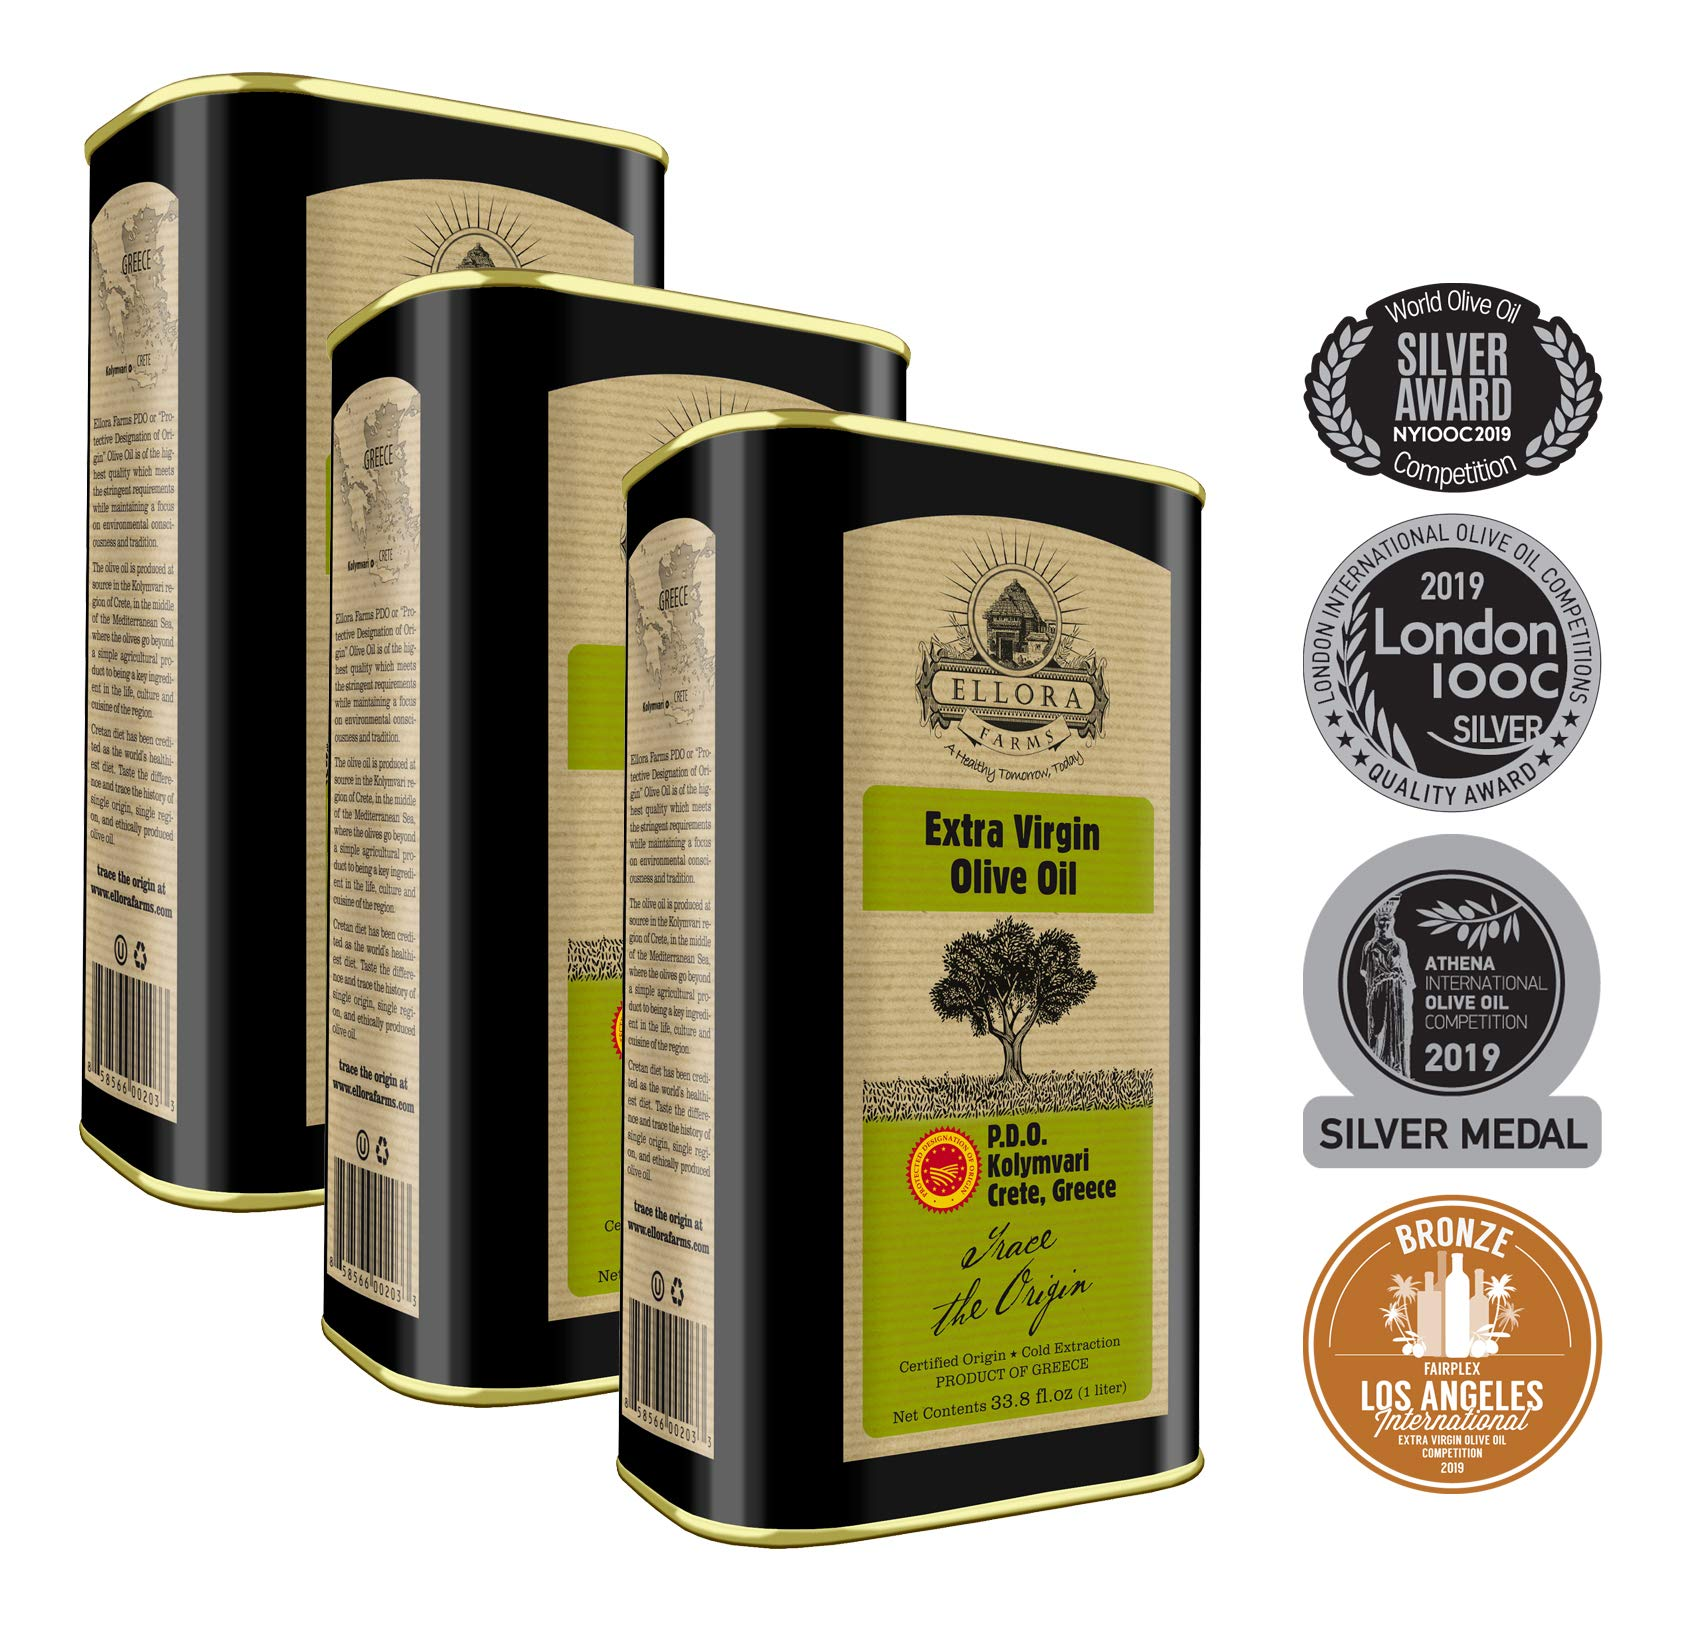 Ellora Farms | Certified PDO Extra Virgin Olive Oil | Traceable Single Origin & Single Estate Extra Virgin Olive Oil | Harvested in Crete, Greece | Kosher OU | 1Ltr. X 3 Tins, total 101.4 FL oz. by Ellora Farms